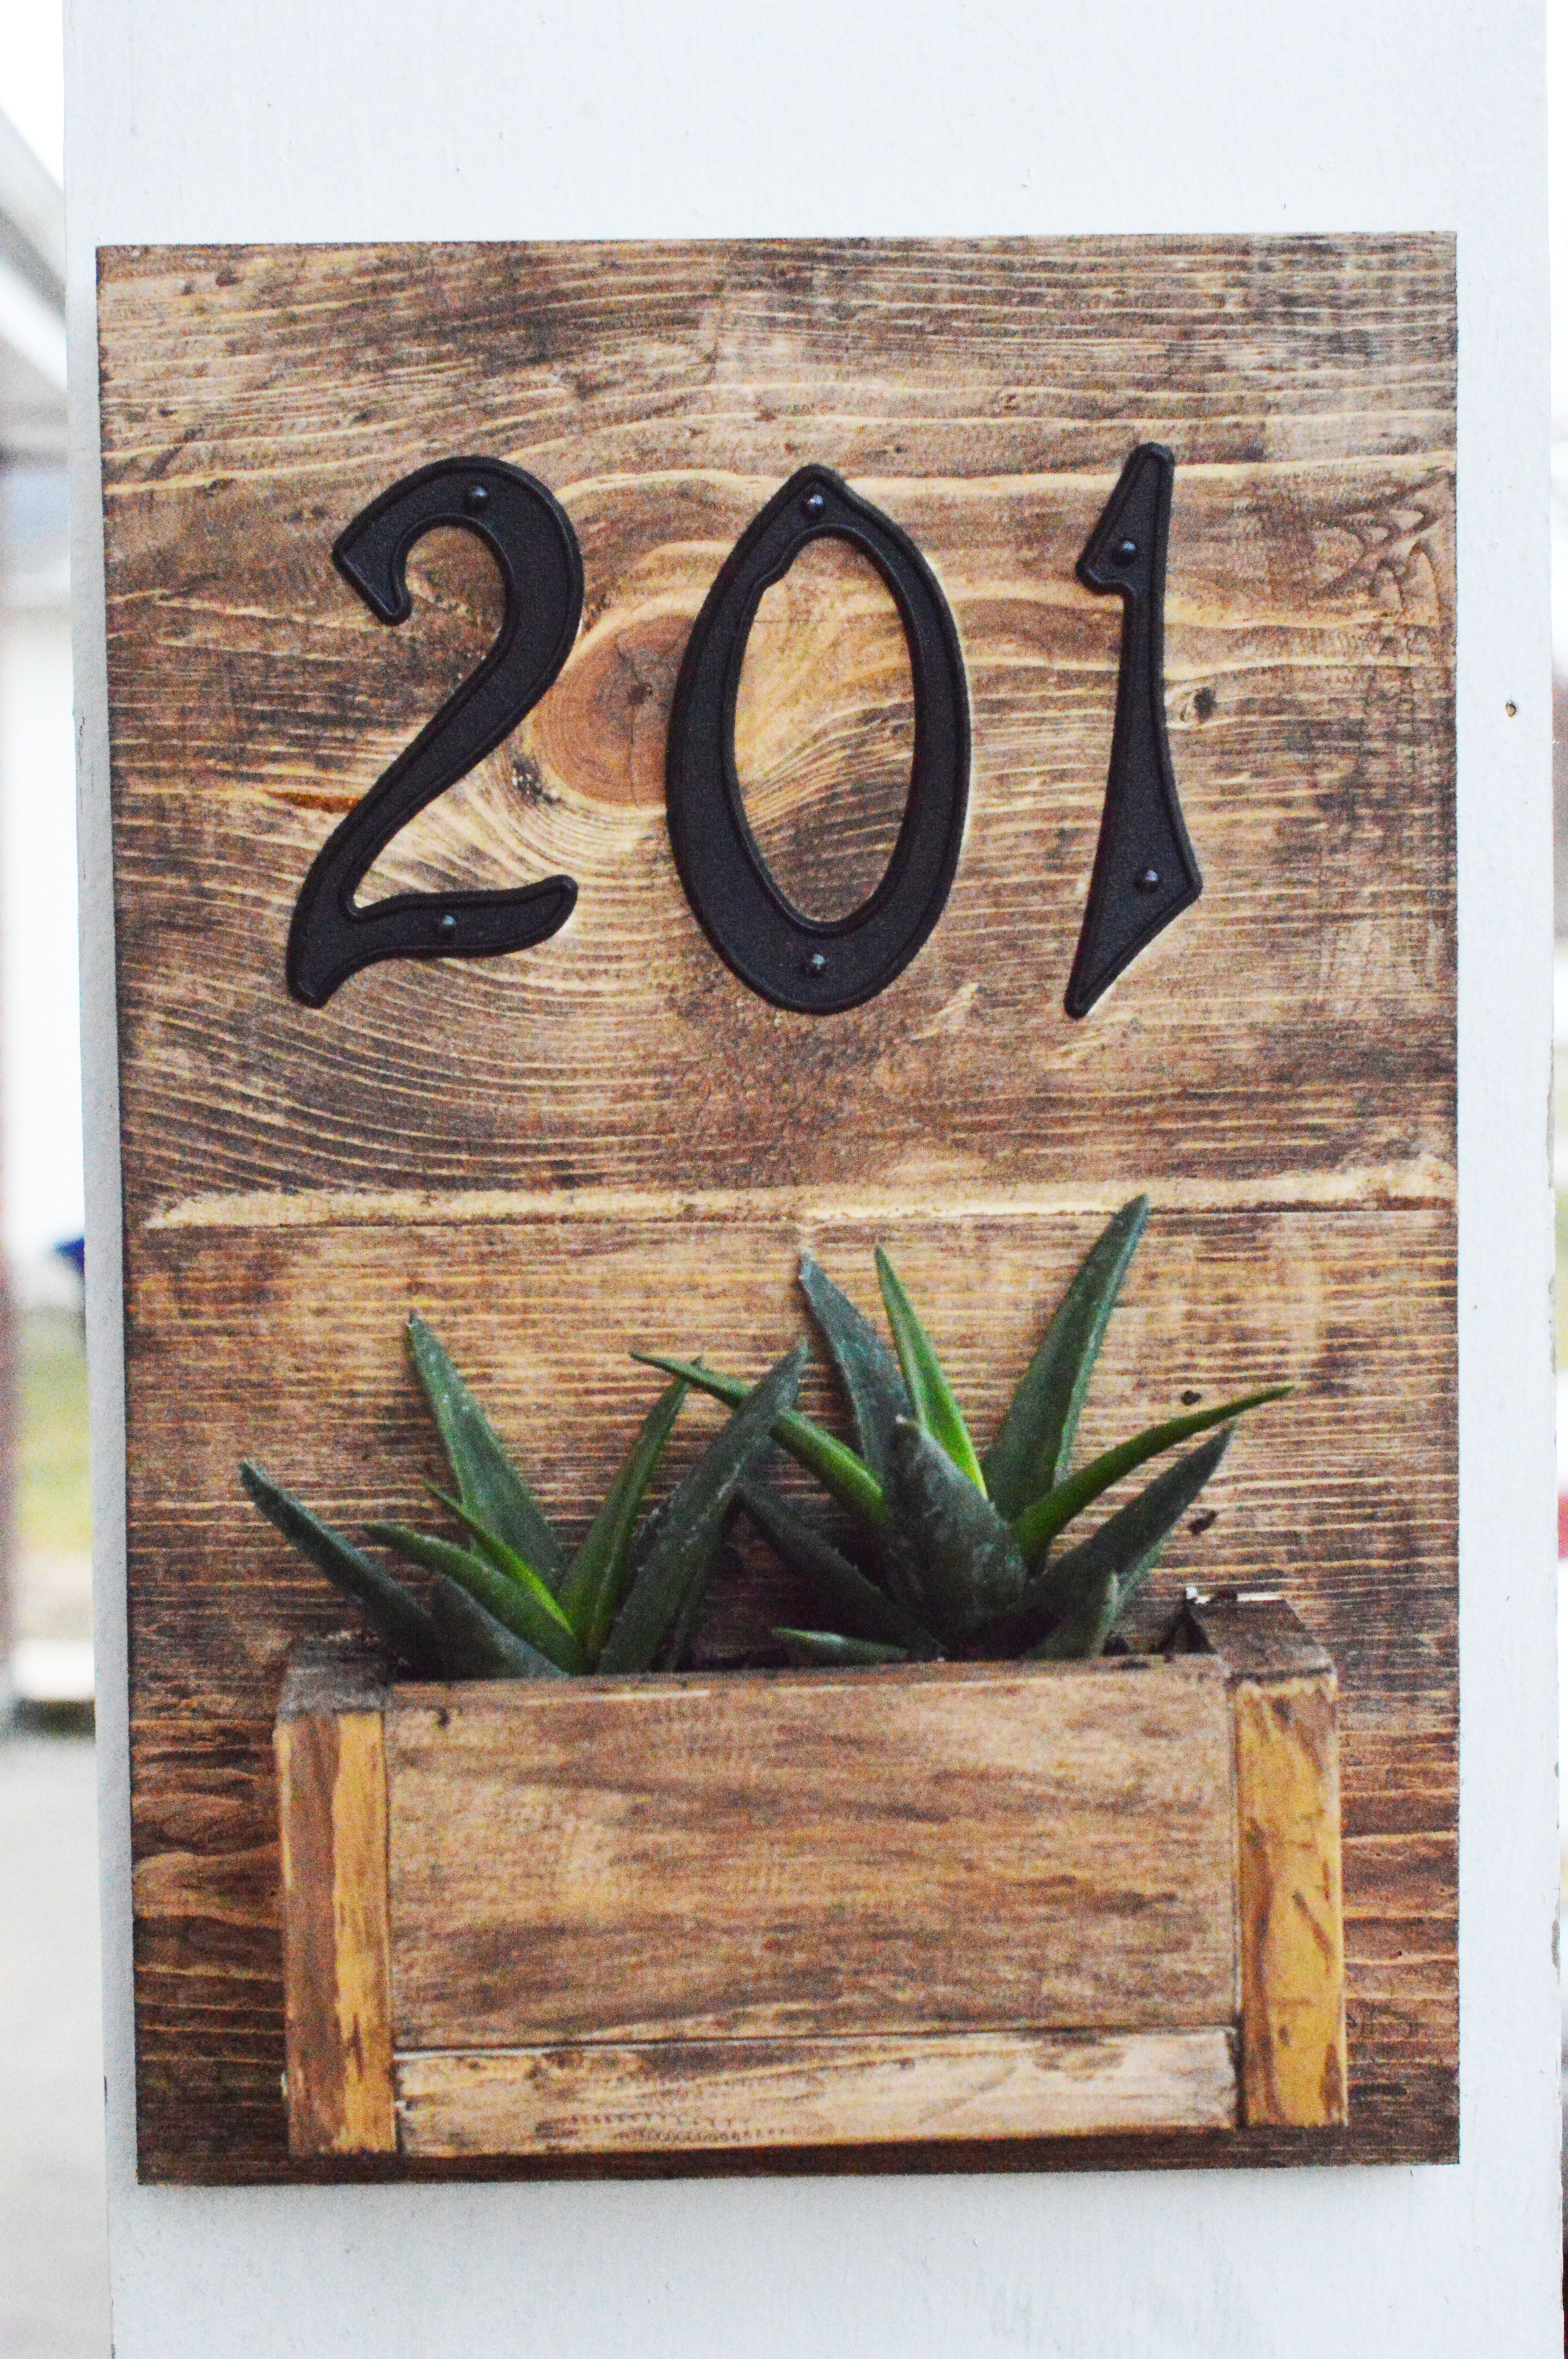 Diy Rustic Address Hanging Planter Box Sign With Street Numbers House Numbers Diy Hanging Planter Boxes Rustic House Numbers